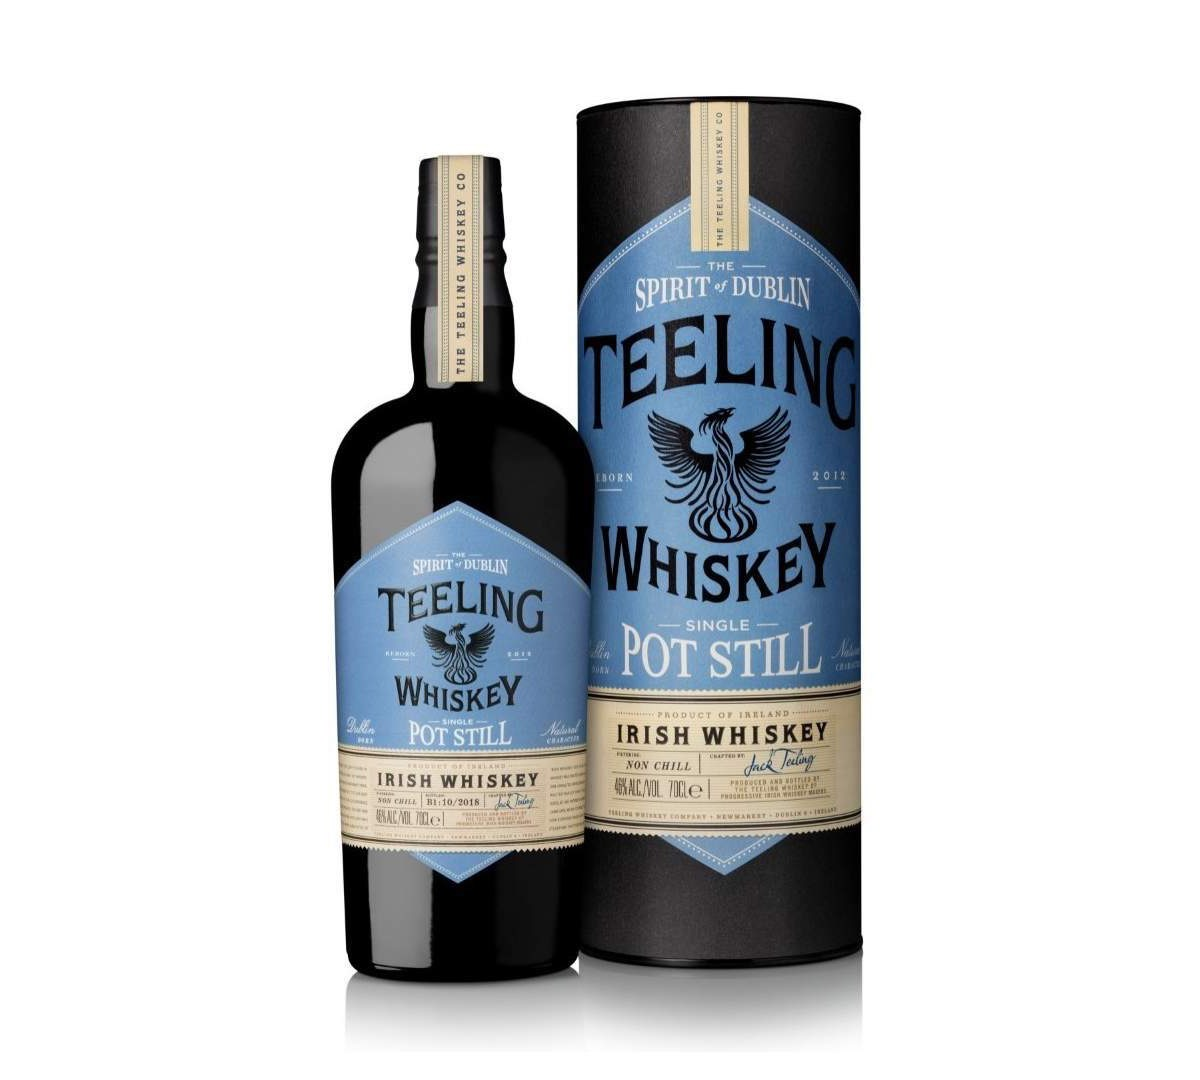 Teeling distillery releases its first Dublin whiskey